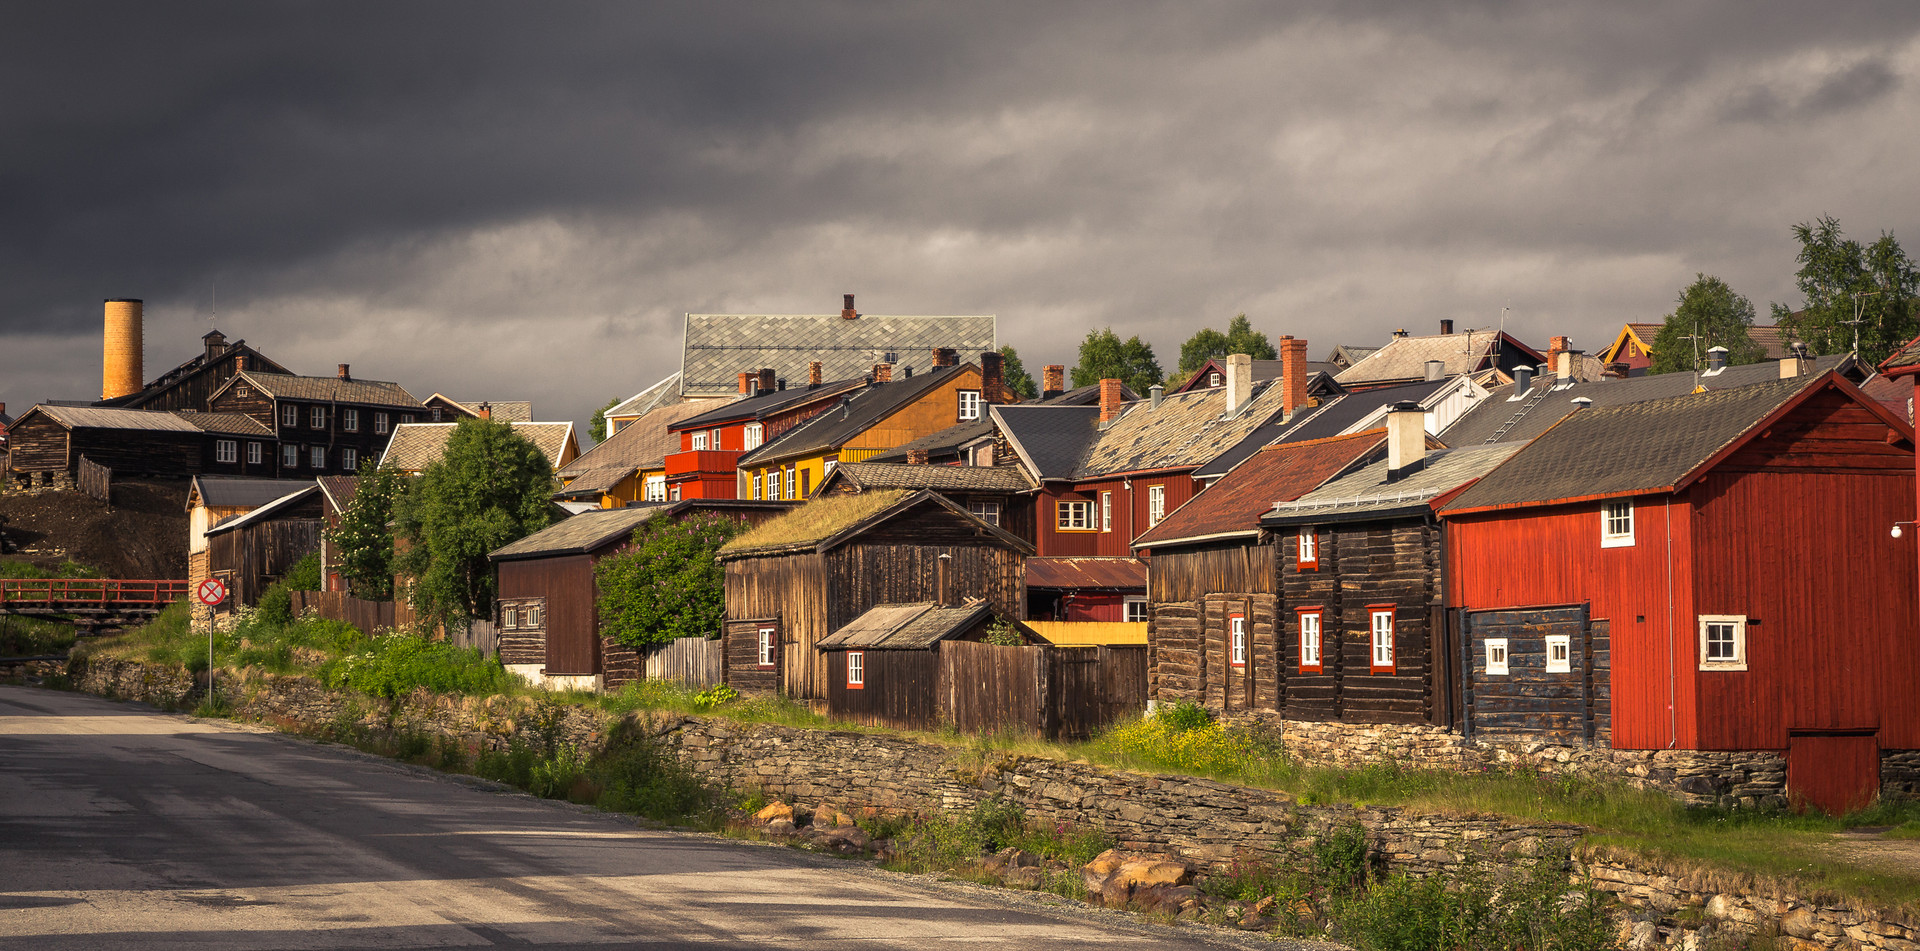 Many of old houses in Røros are still in use.